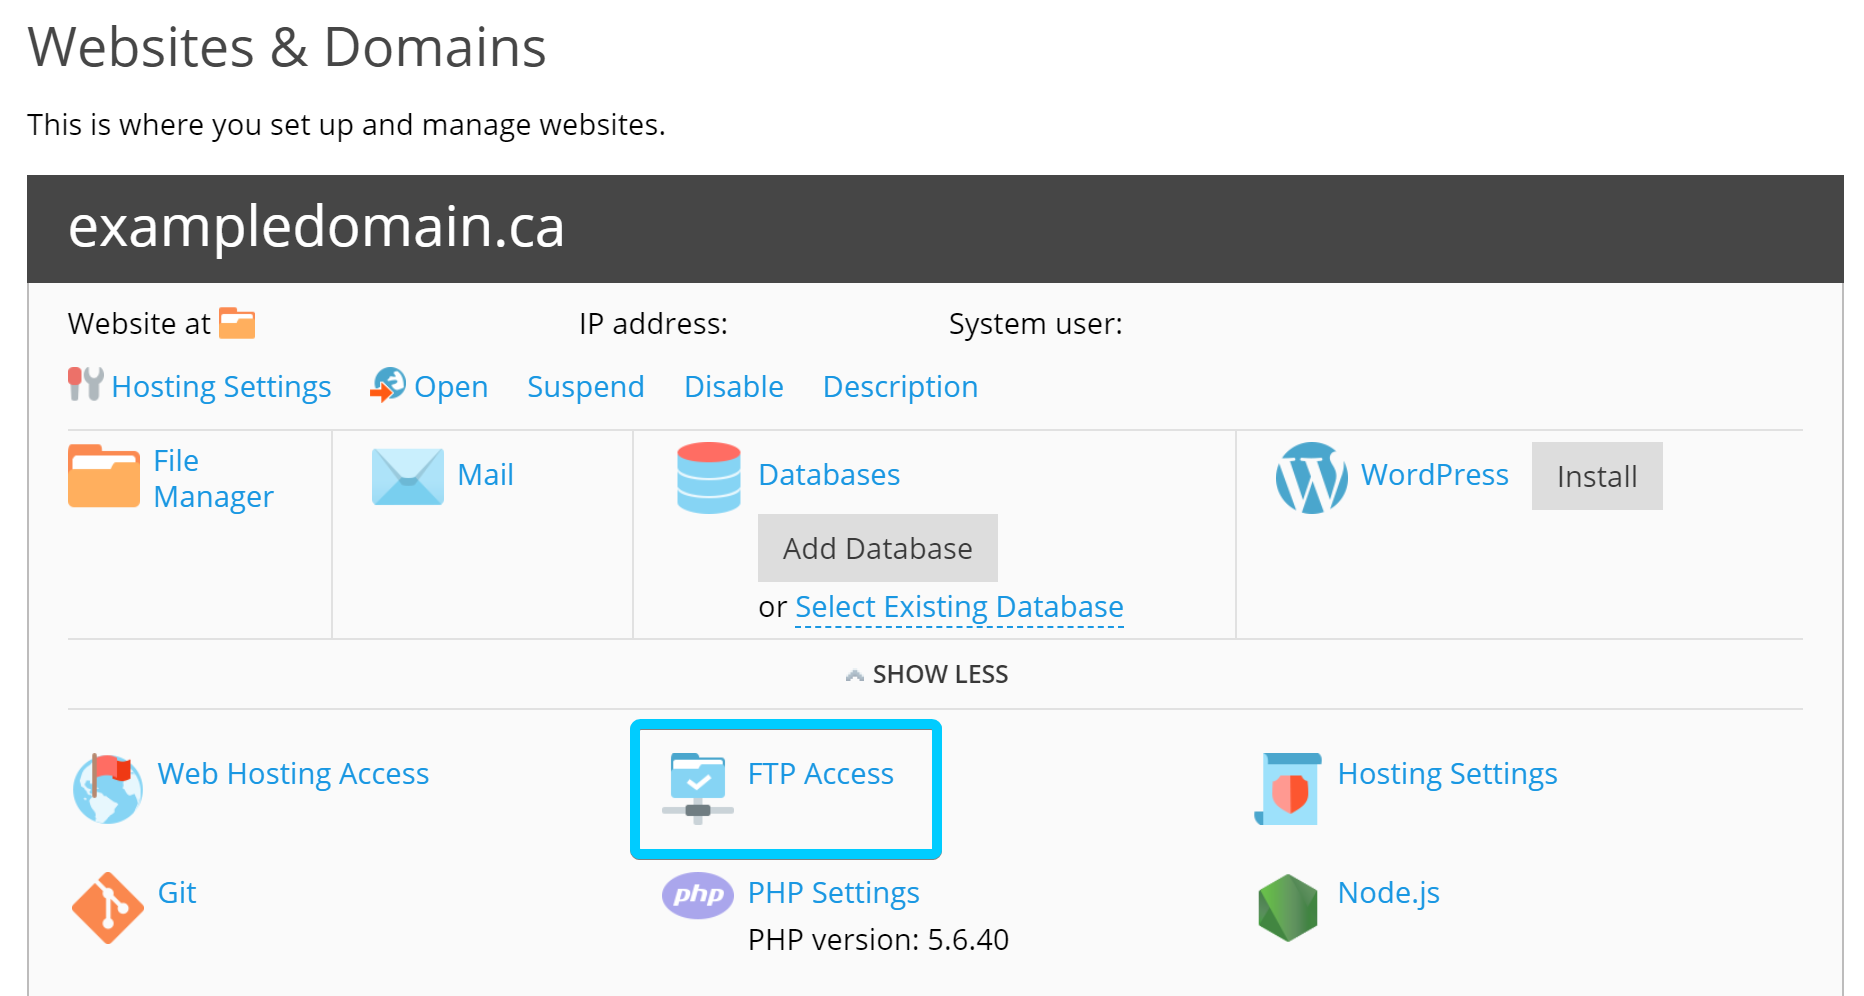 How do I create an FTP user? What are my FTP settings